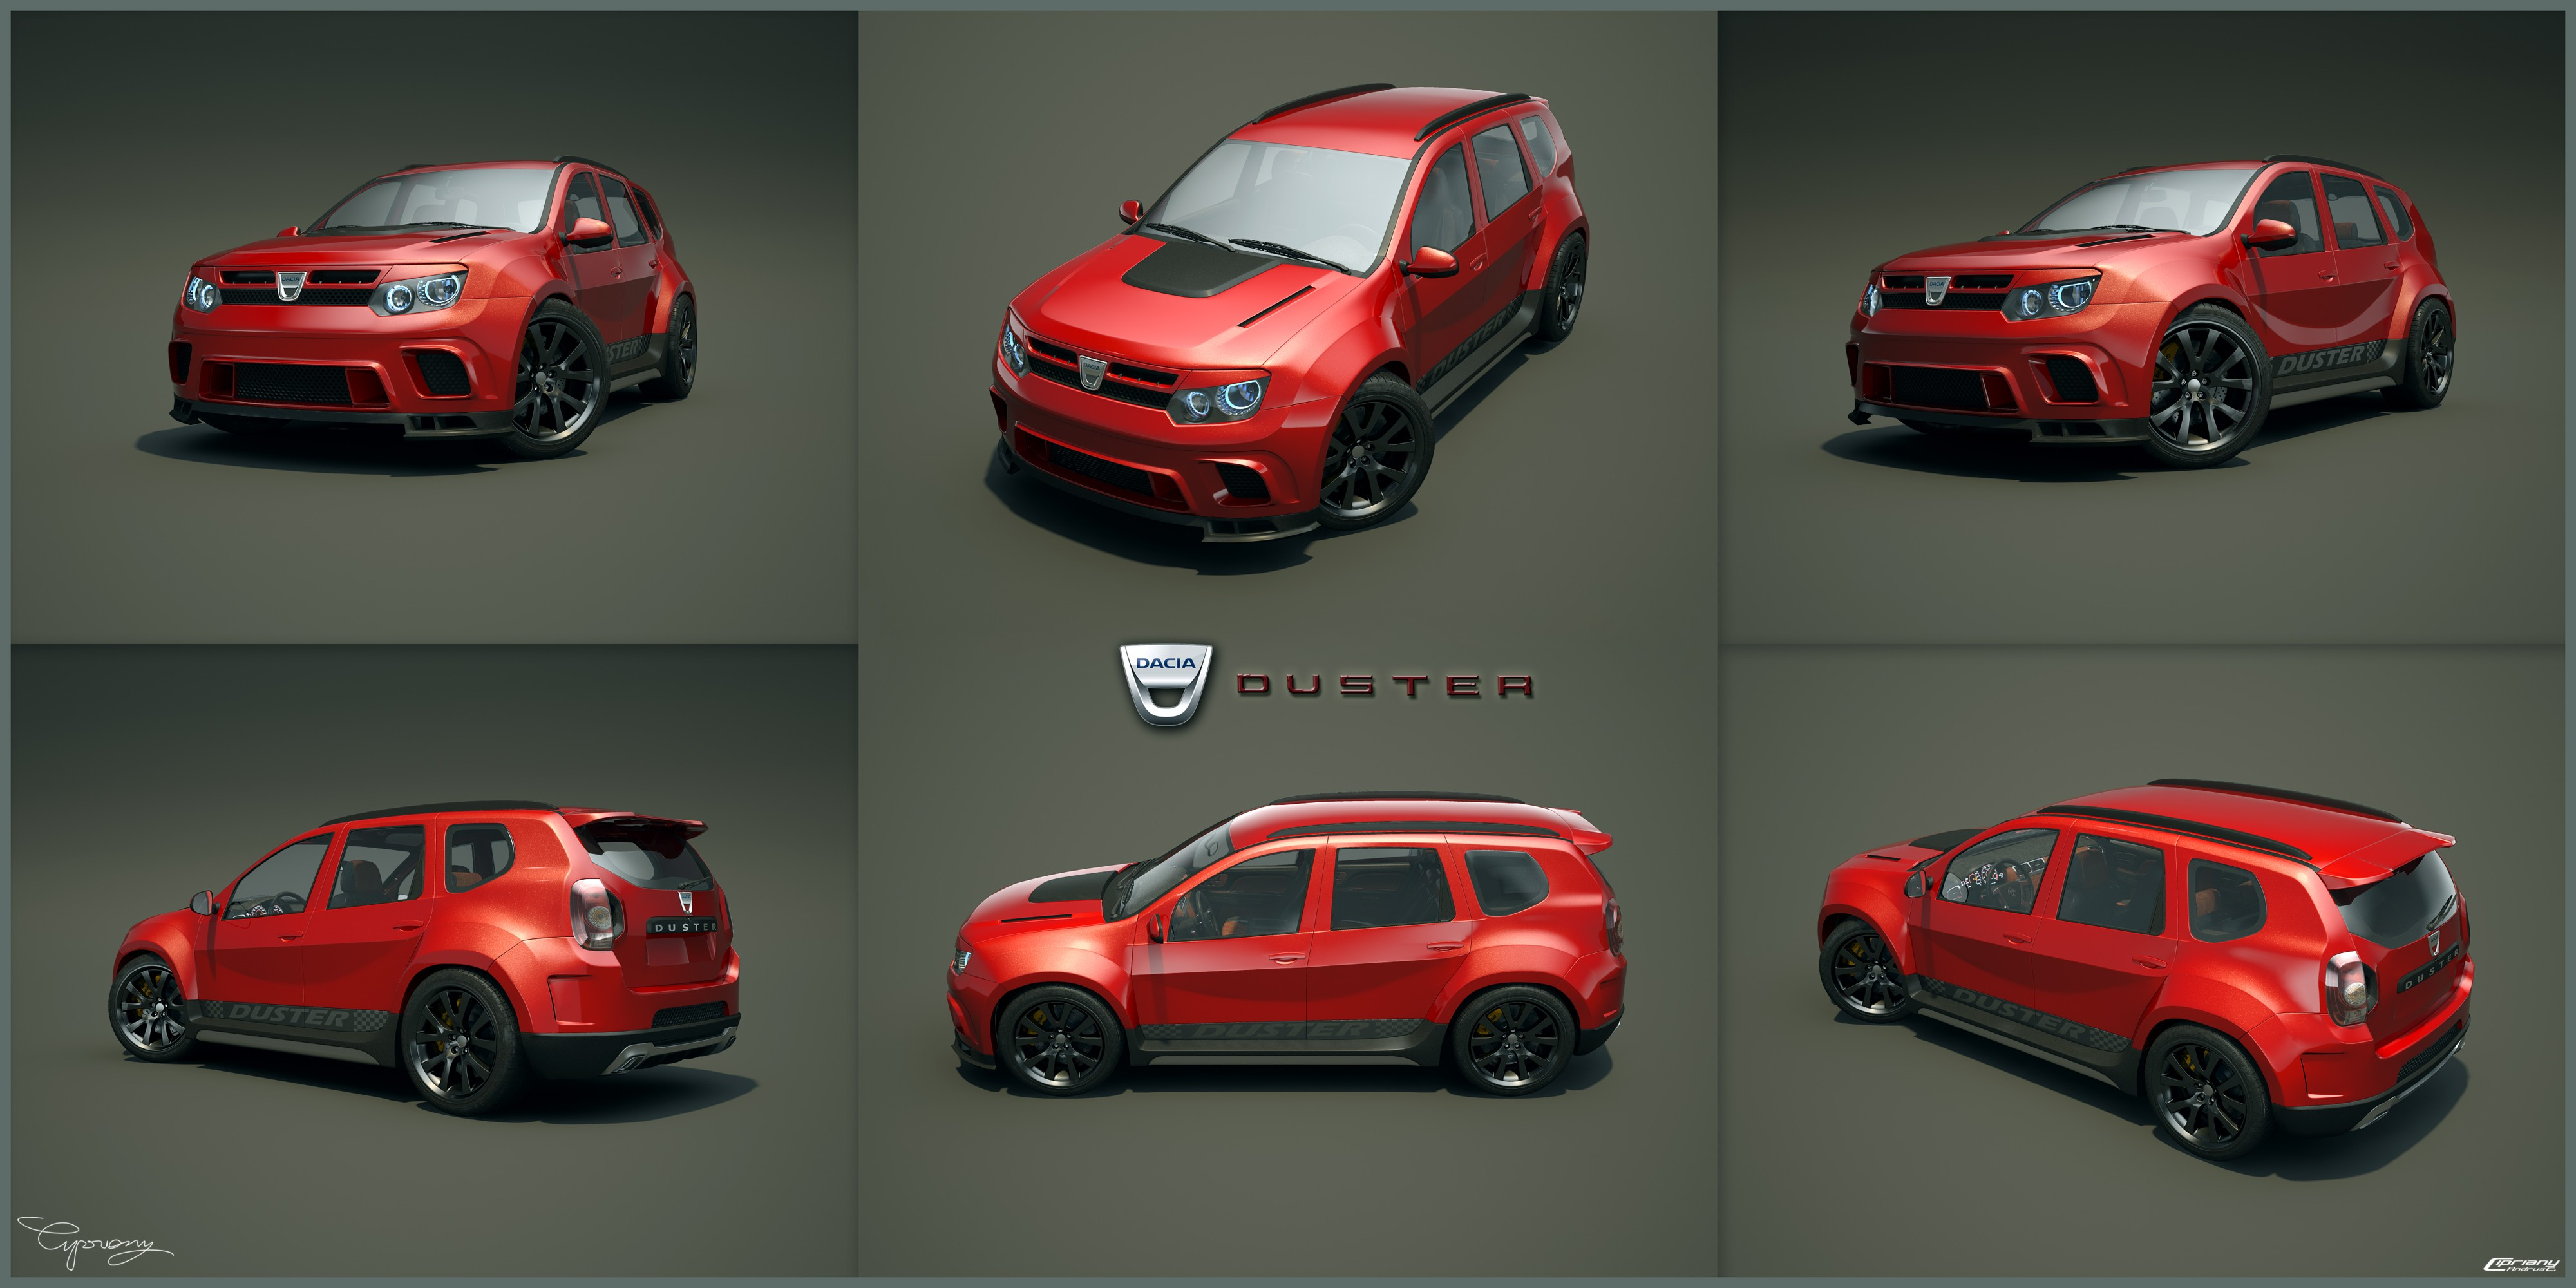 Dacia Duster Tuning 29 by cipriany on DeviantArt